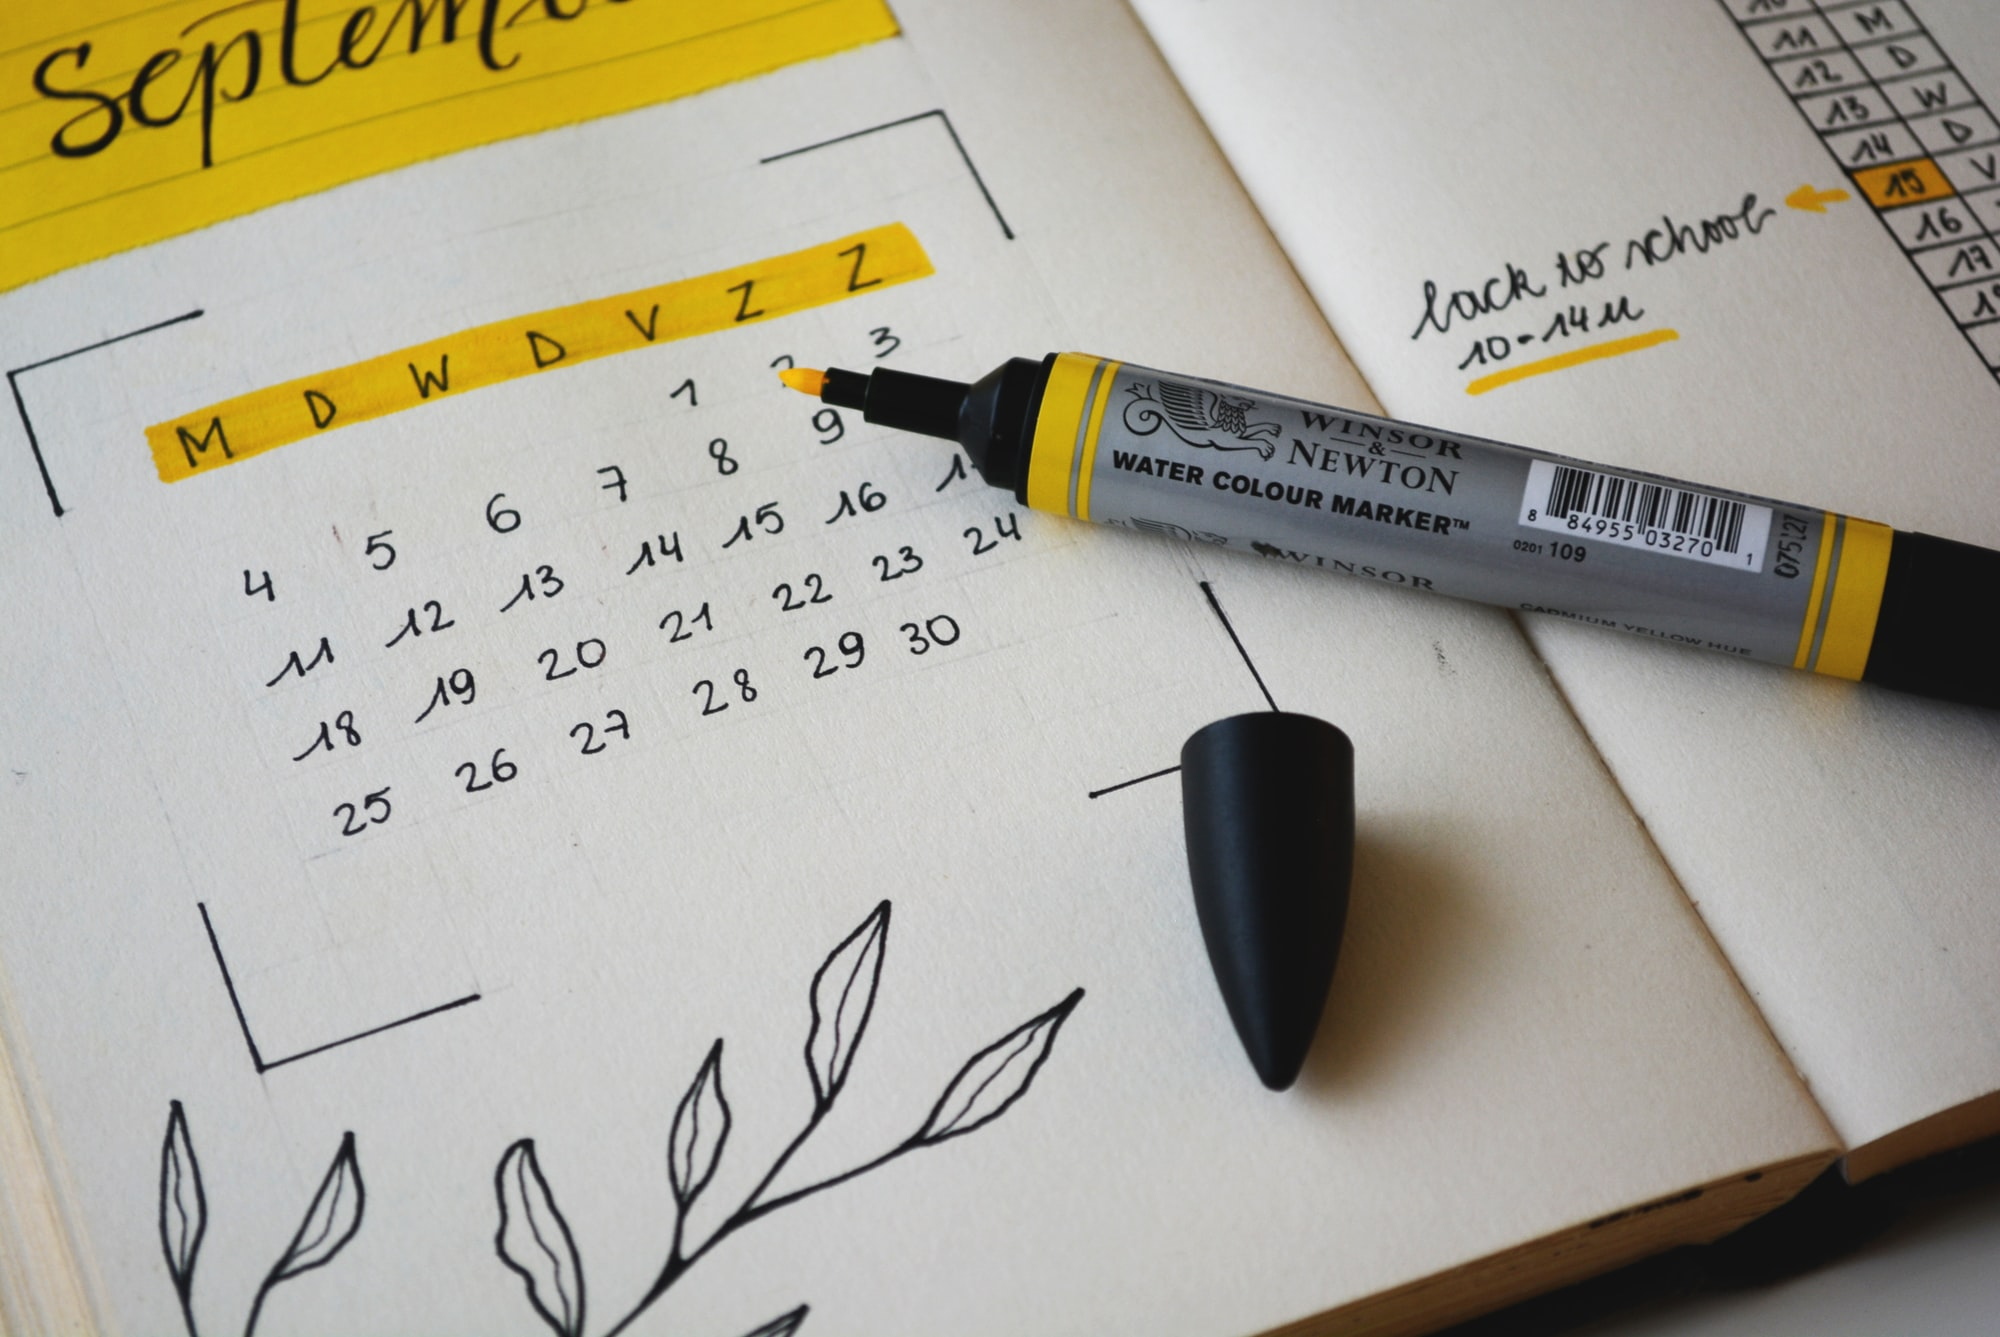 Back to school with a bullet journal